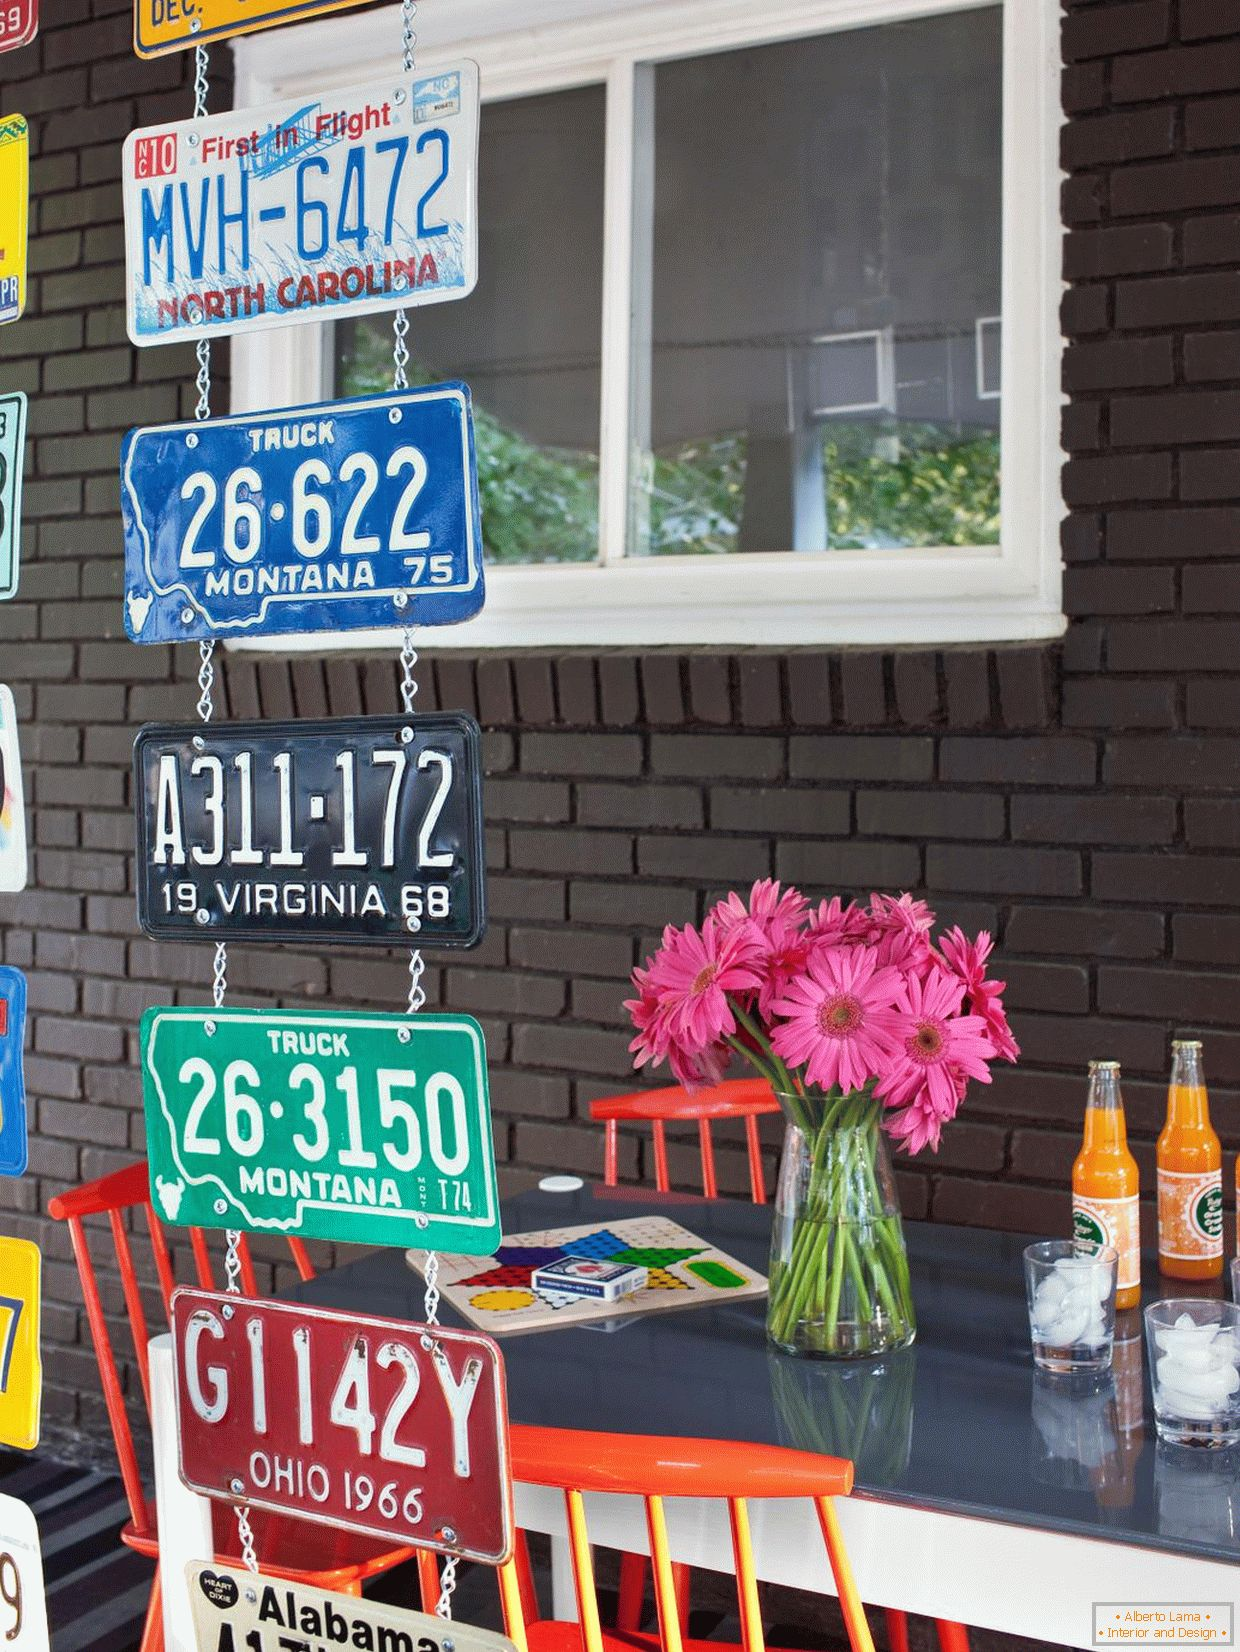 Vertical partition of old license plates